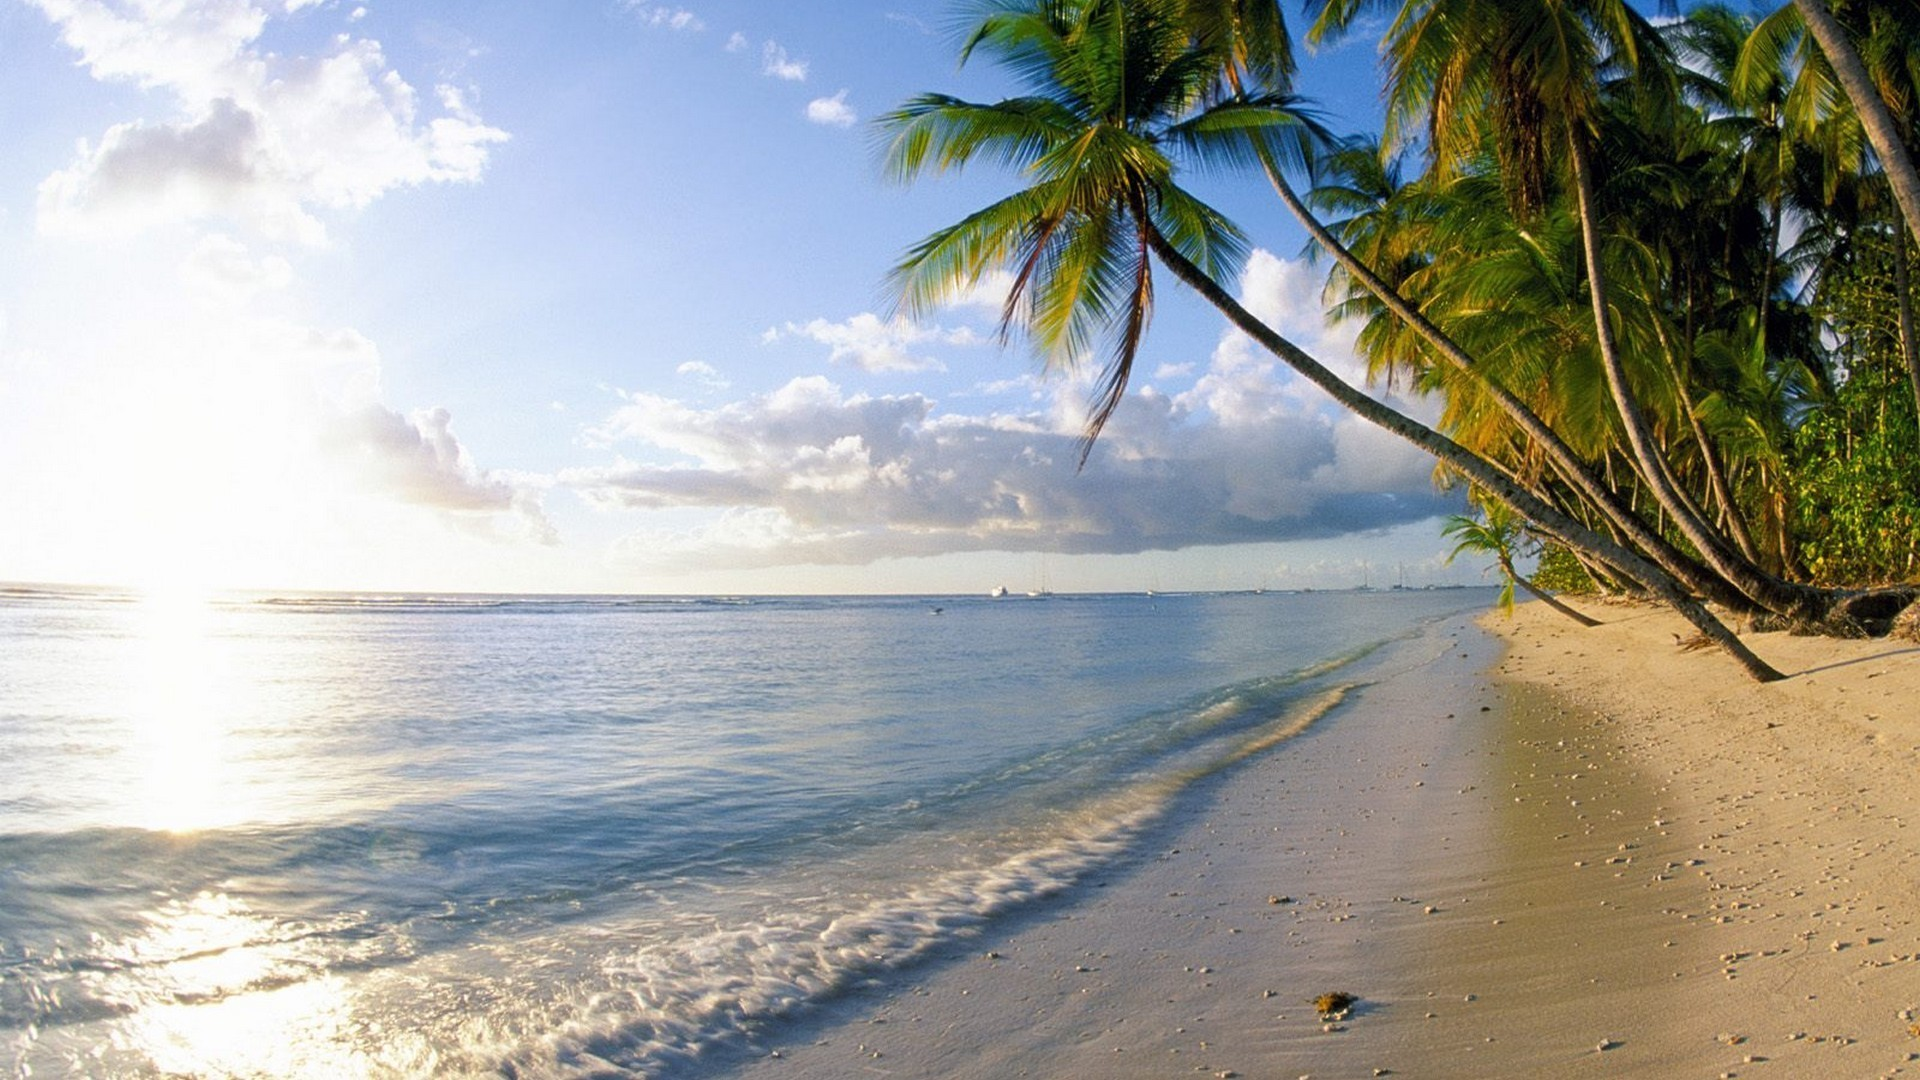 caribbean tobago beaches palm trees pigeons wallpaper | allwallpaper